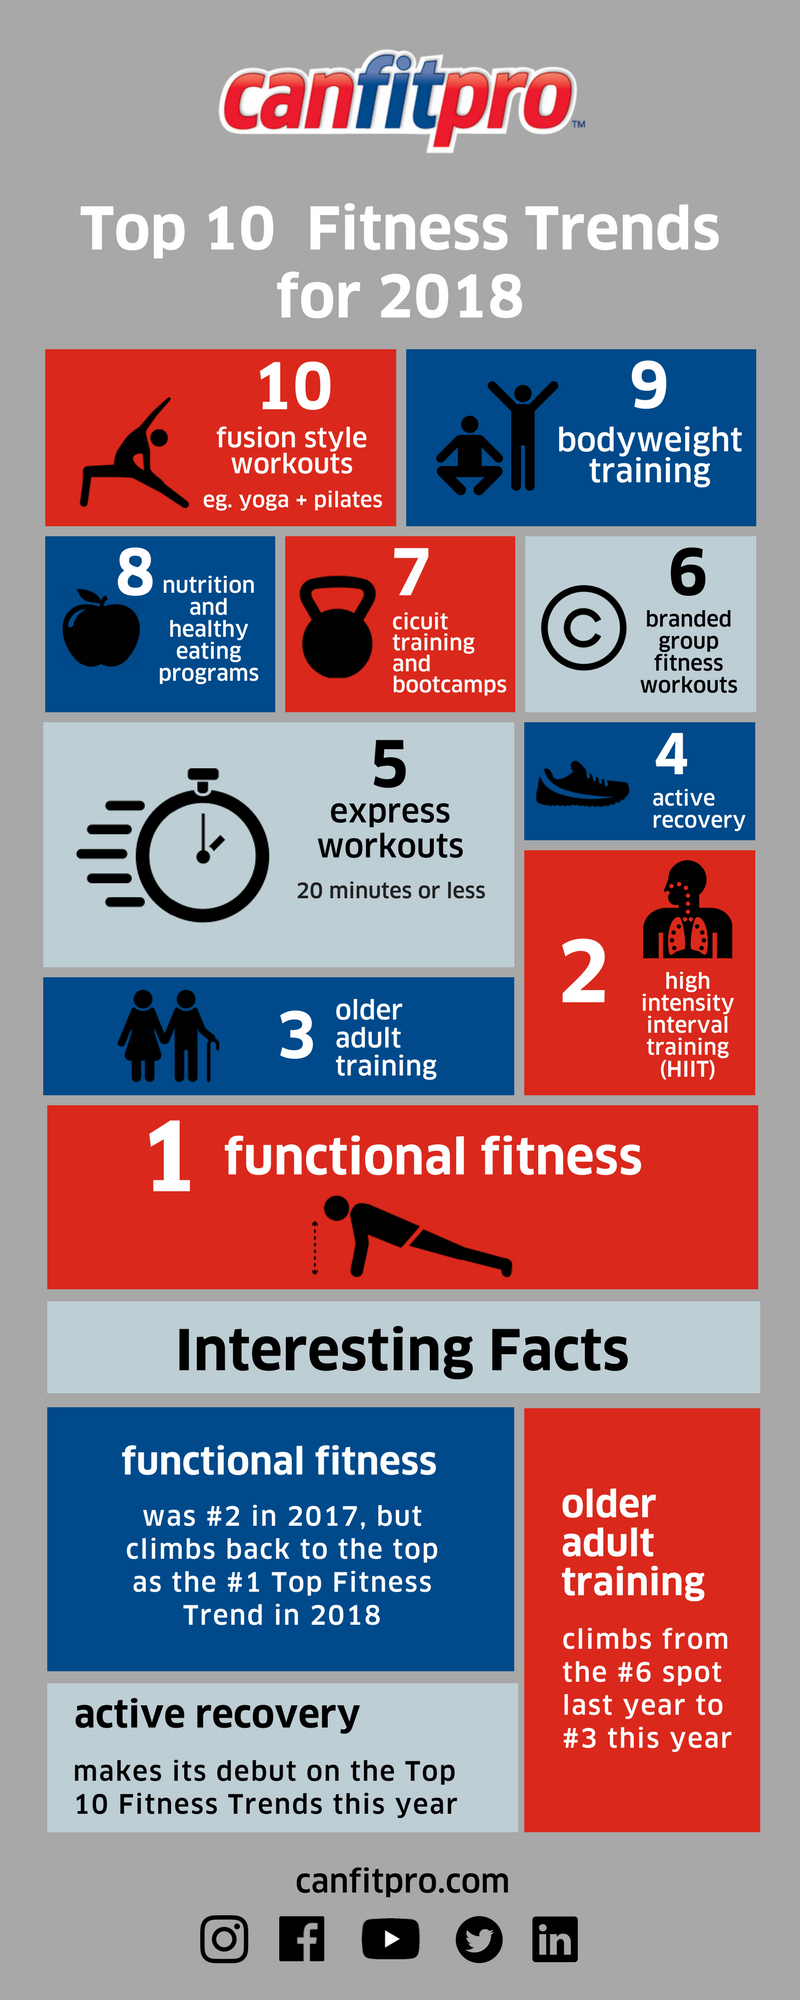 FUNCTIONAL FITNESS IS THE NEW #1 CANADIAN FITNESS TREND EXPECTED FOR 2018